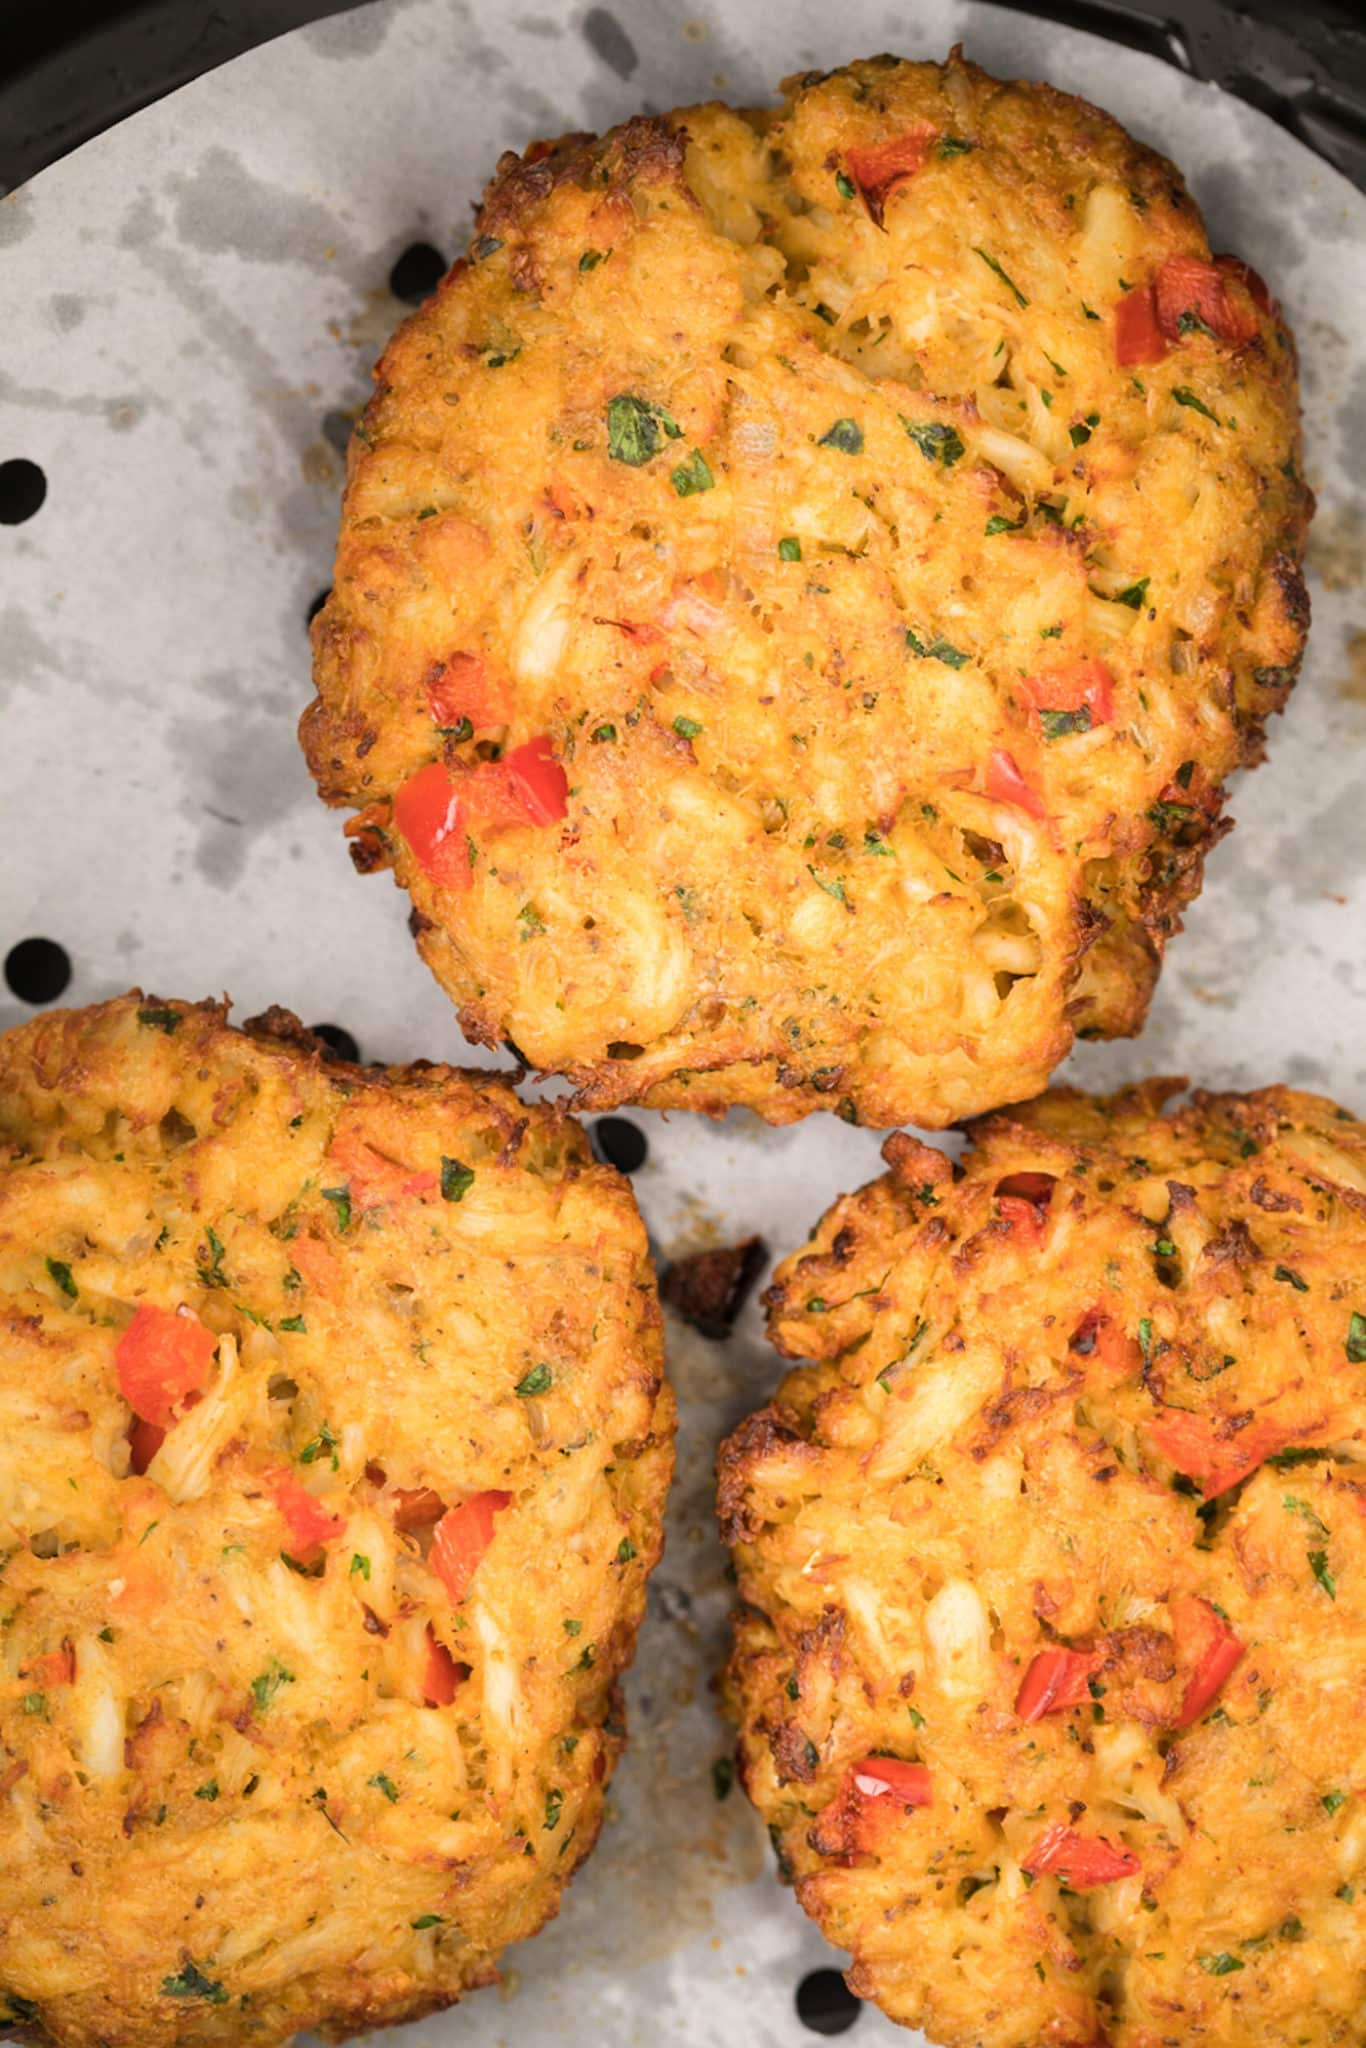 baked crab cakes on parchment paper liner in air fryer basket